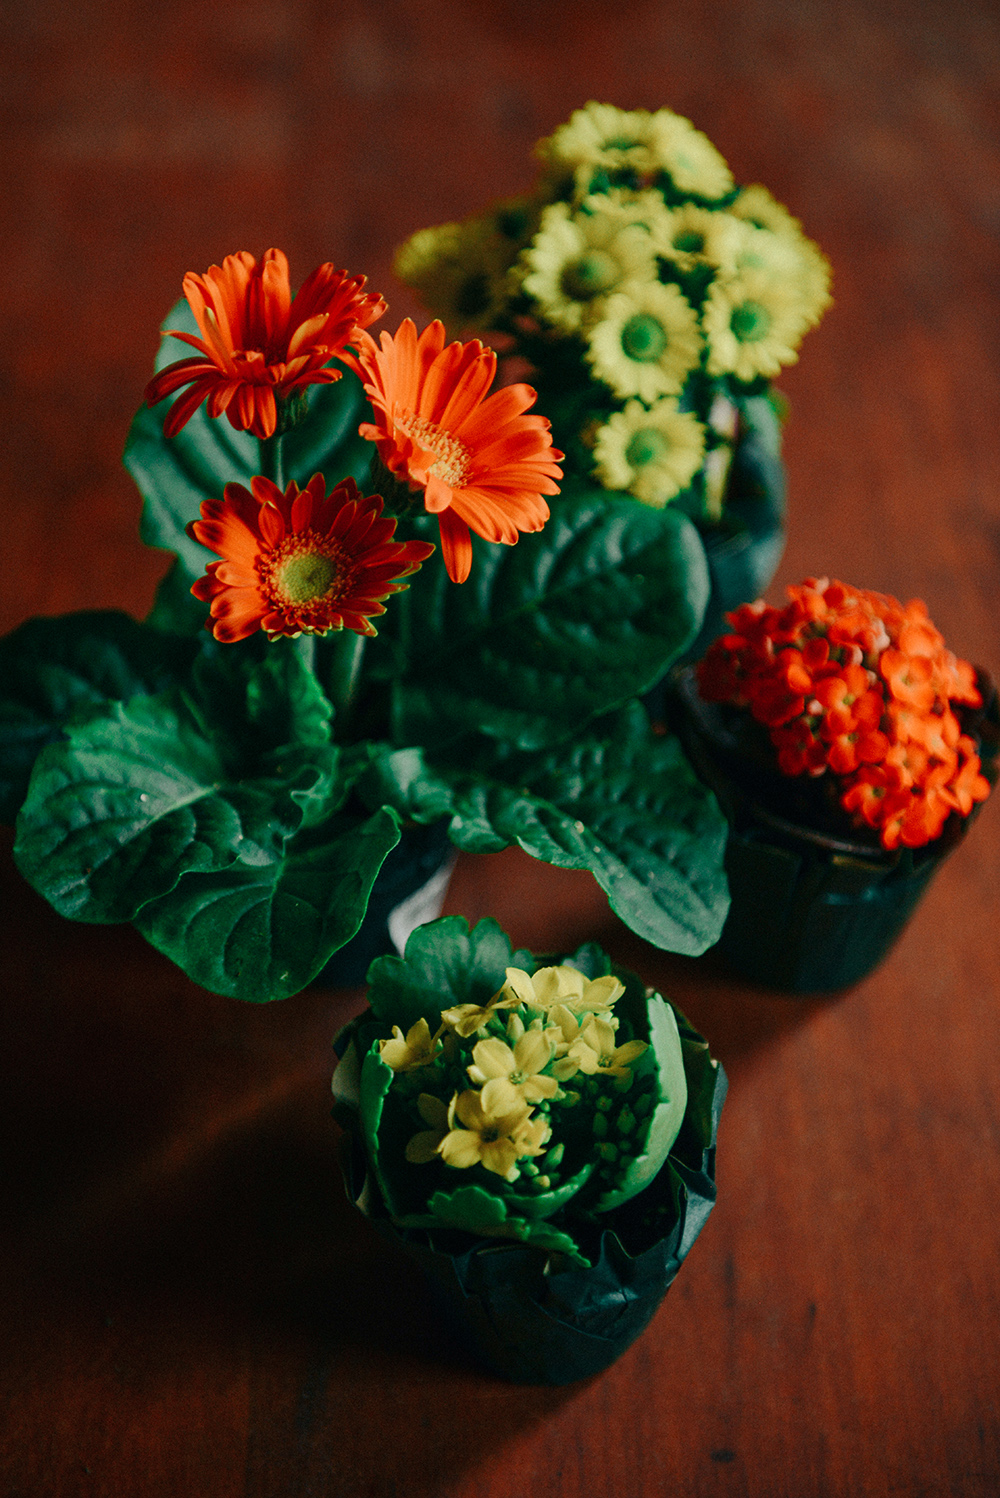 Flowers and Fruit by With The Grains 02